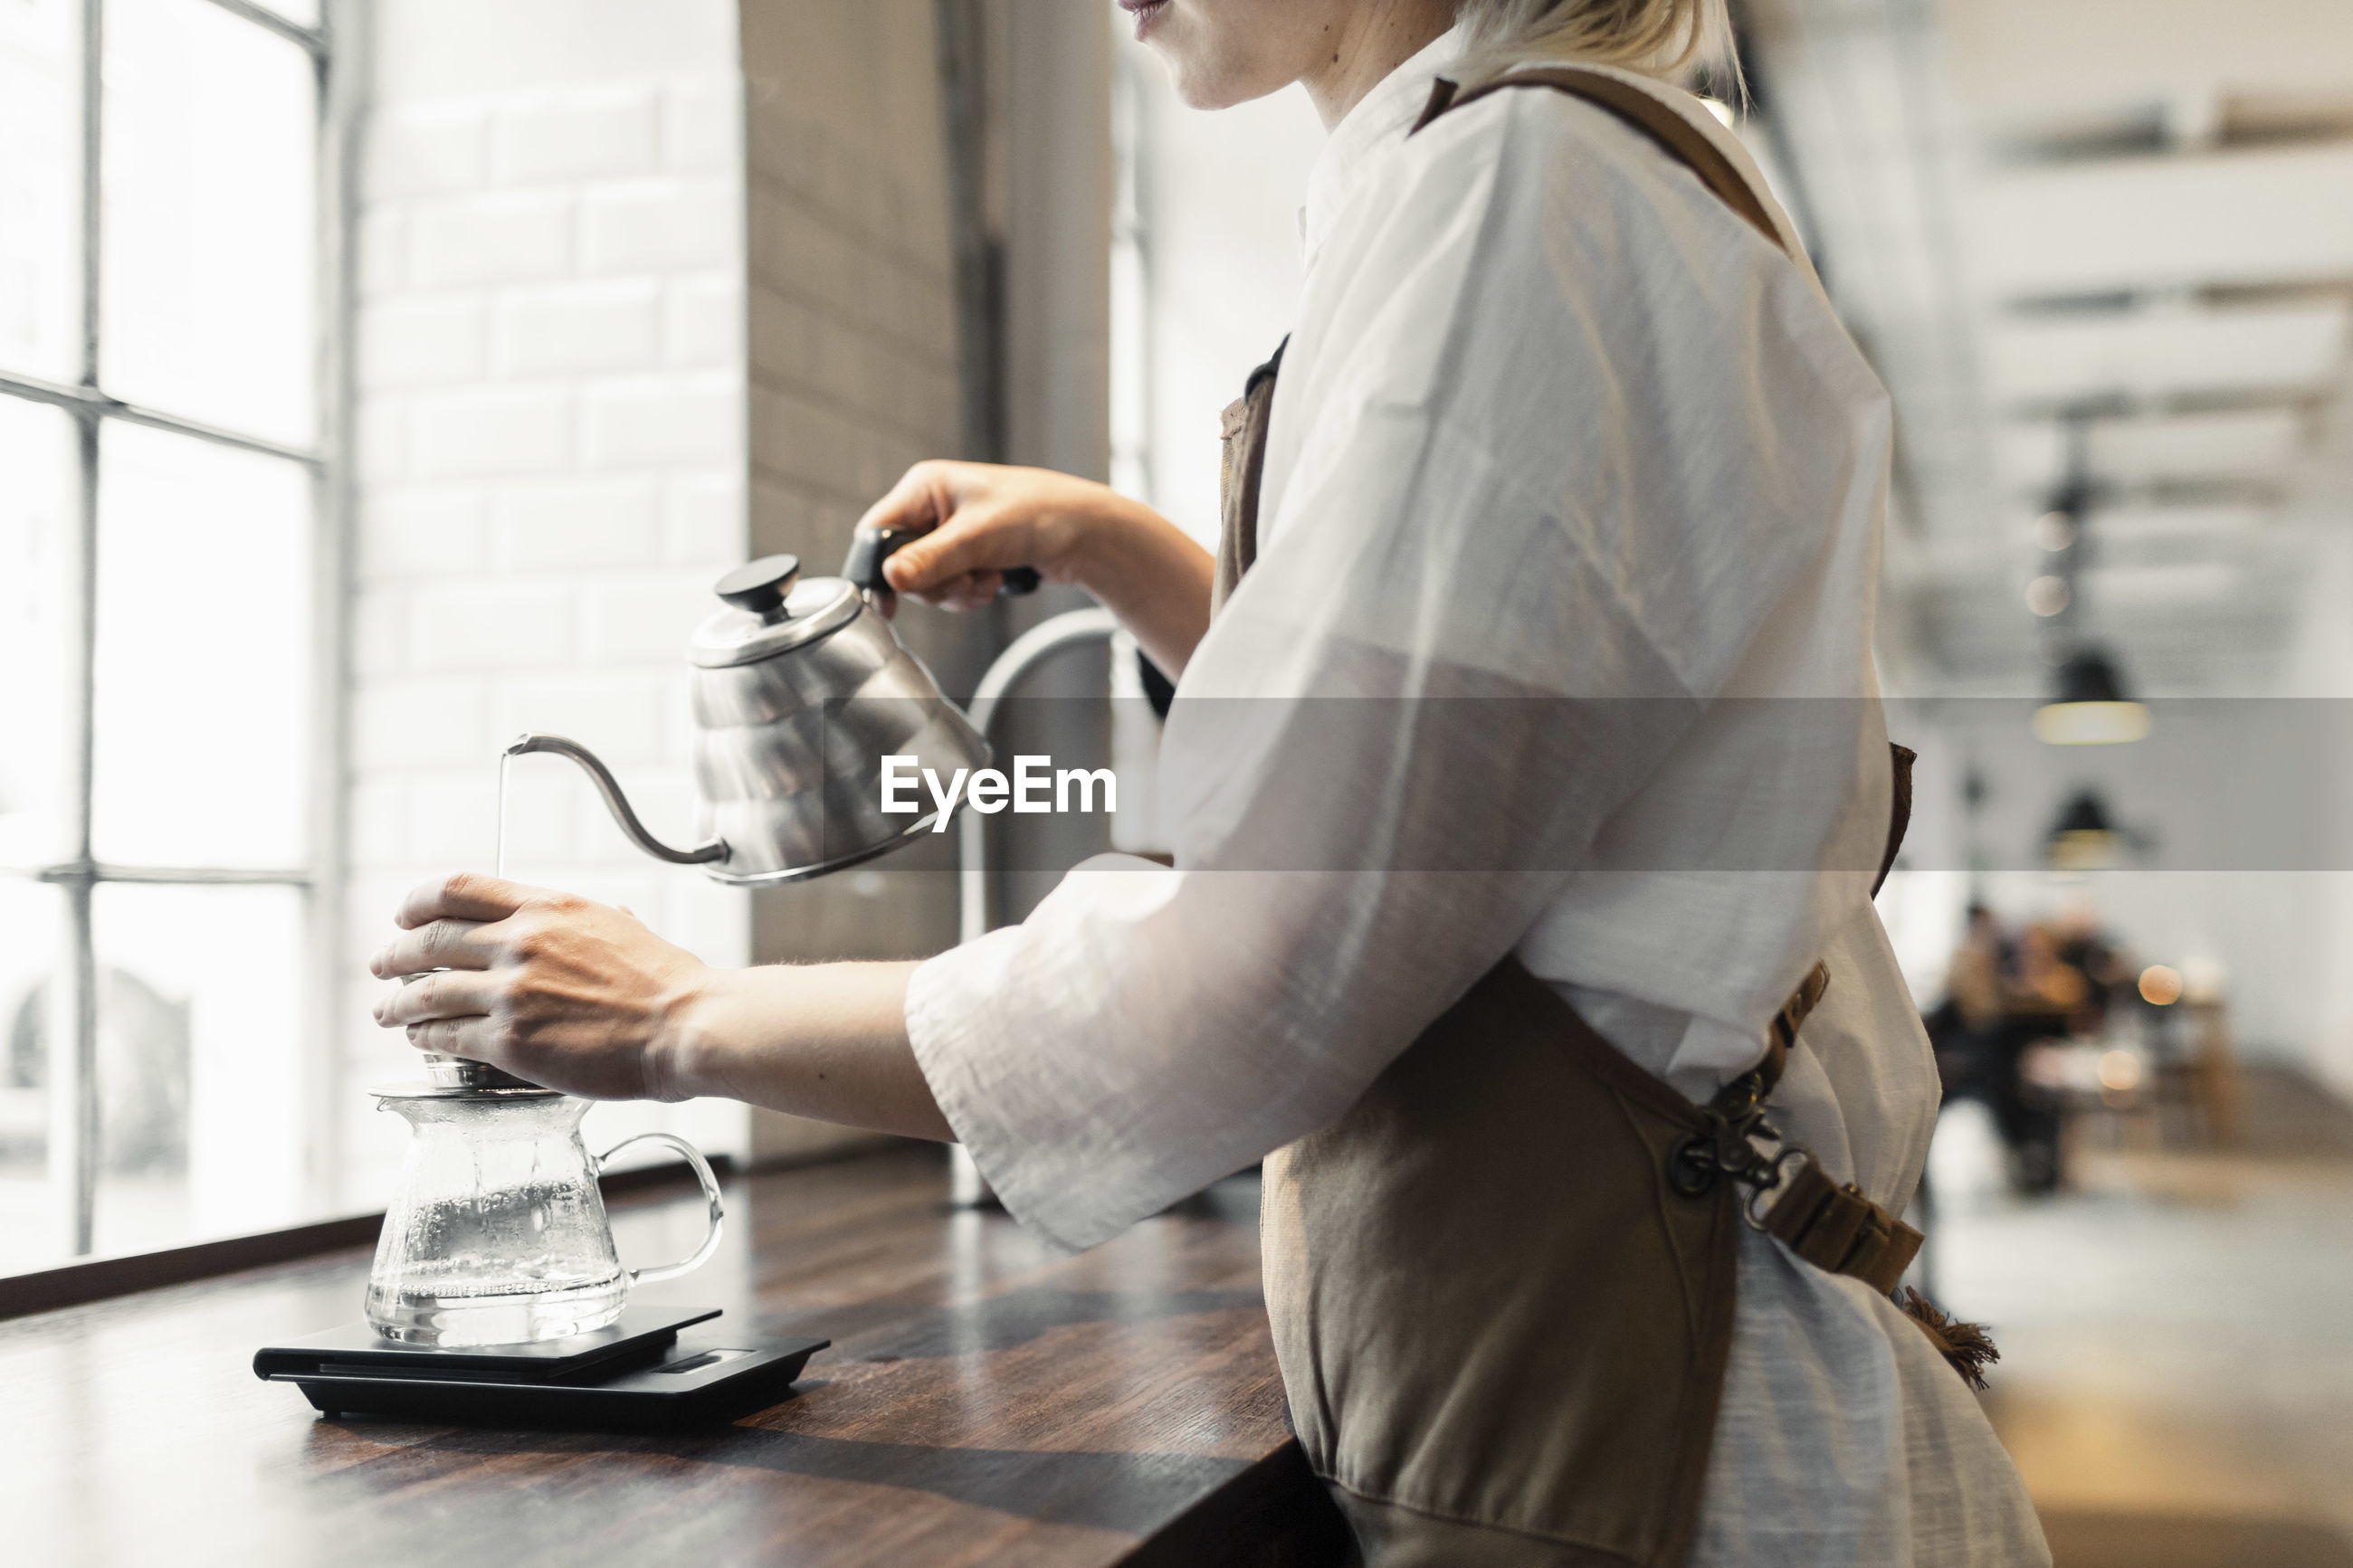 SIDE VIEW OF WOMAN HOLDING COFFEE CUP IN KITCHEN